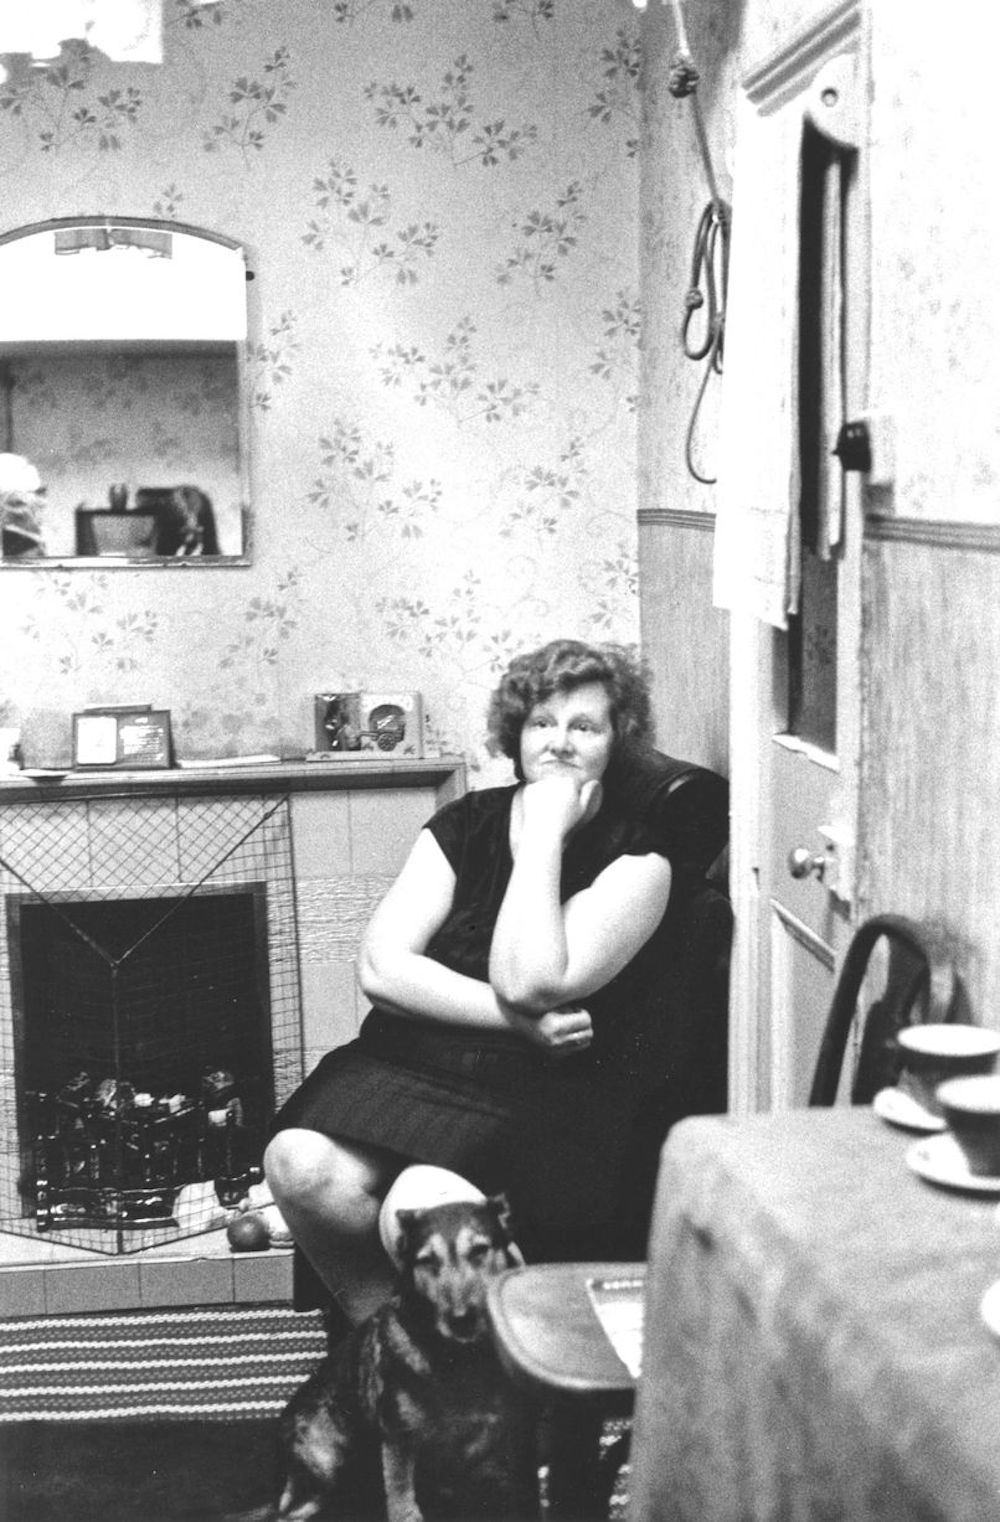 Mrs Long at home 1972, Toxteth, Liverpool